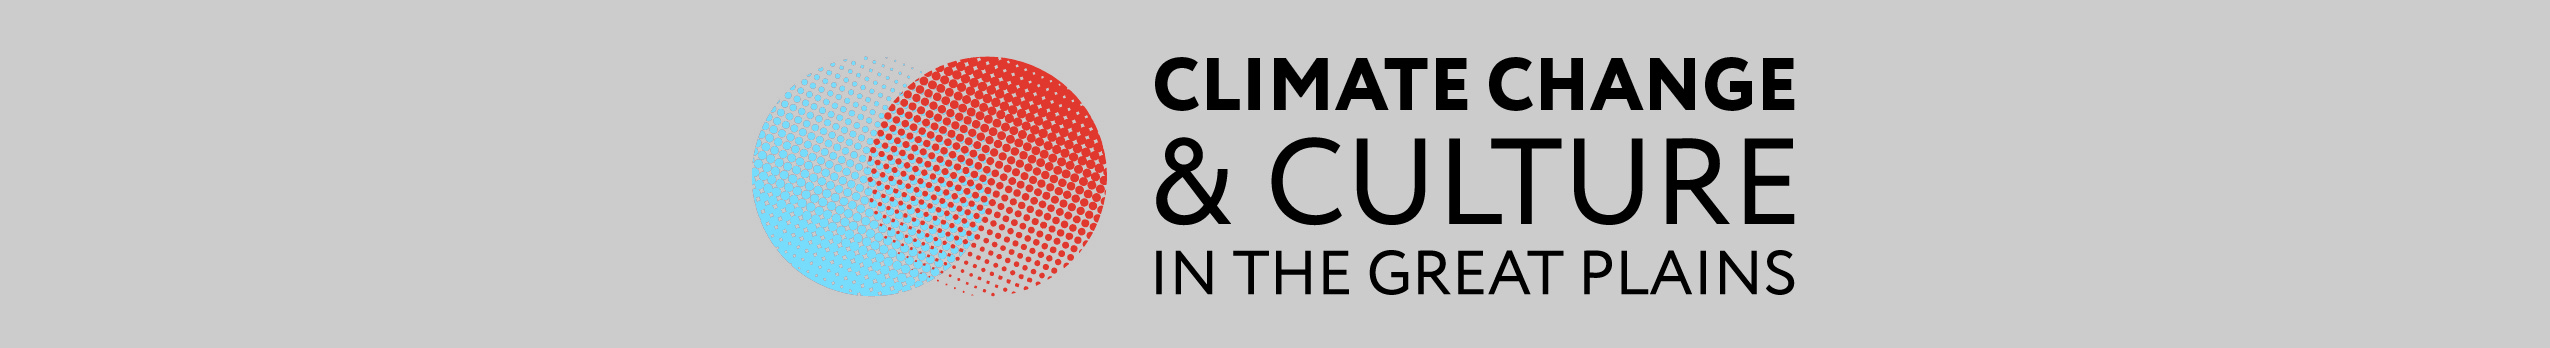 2020 Climate Change and Culture in the Great Plains